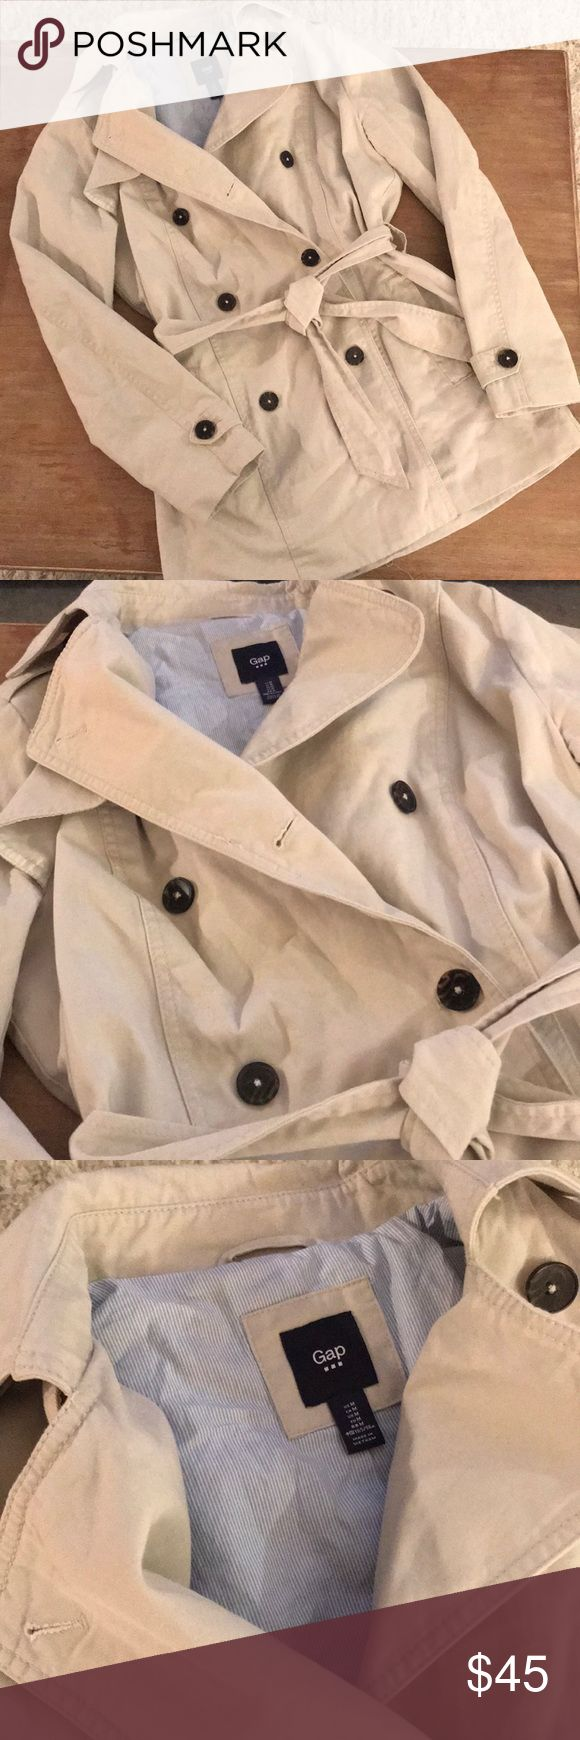 Gap Trench Coat 🎉Host Pick 🎉 Gap trench coat (from gap outlet store). Light khaki in color. Light blue and white striped lining. Tortoise buttons. Very stylish and classic. Worn once. Size medium. GAP Jackets & Coats Trench Coats